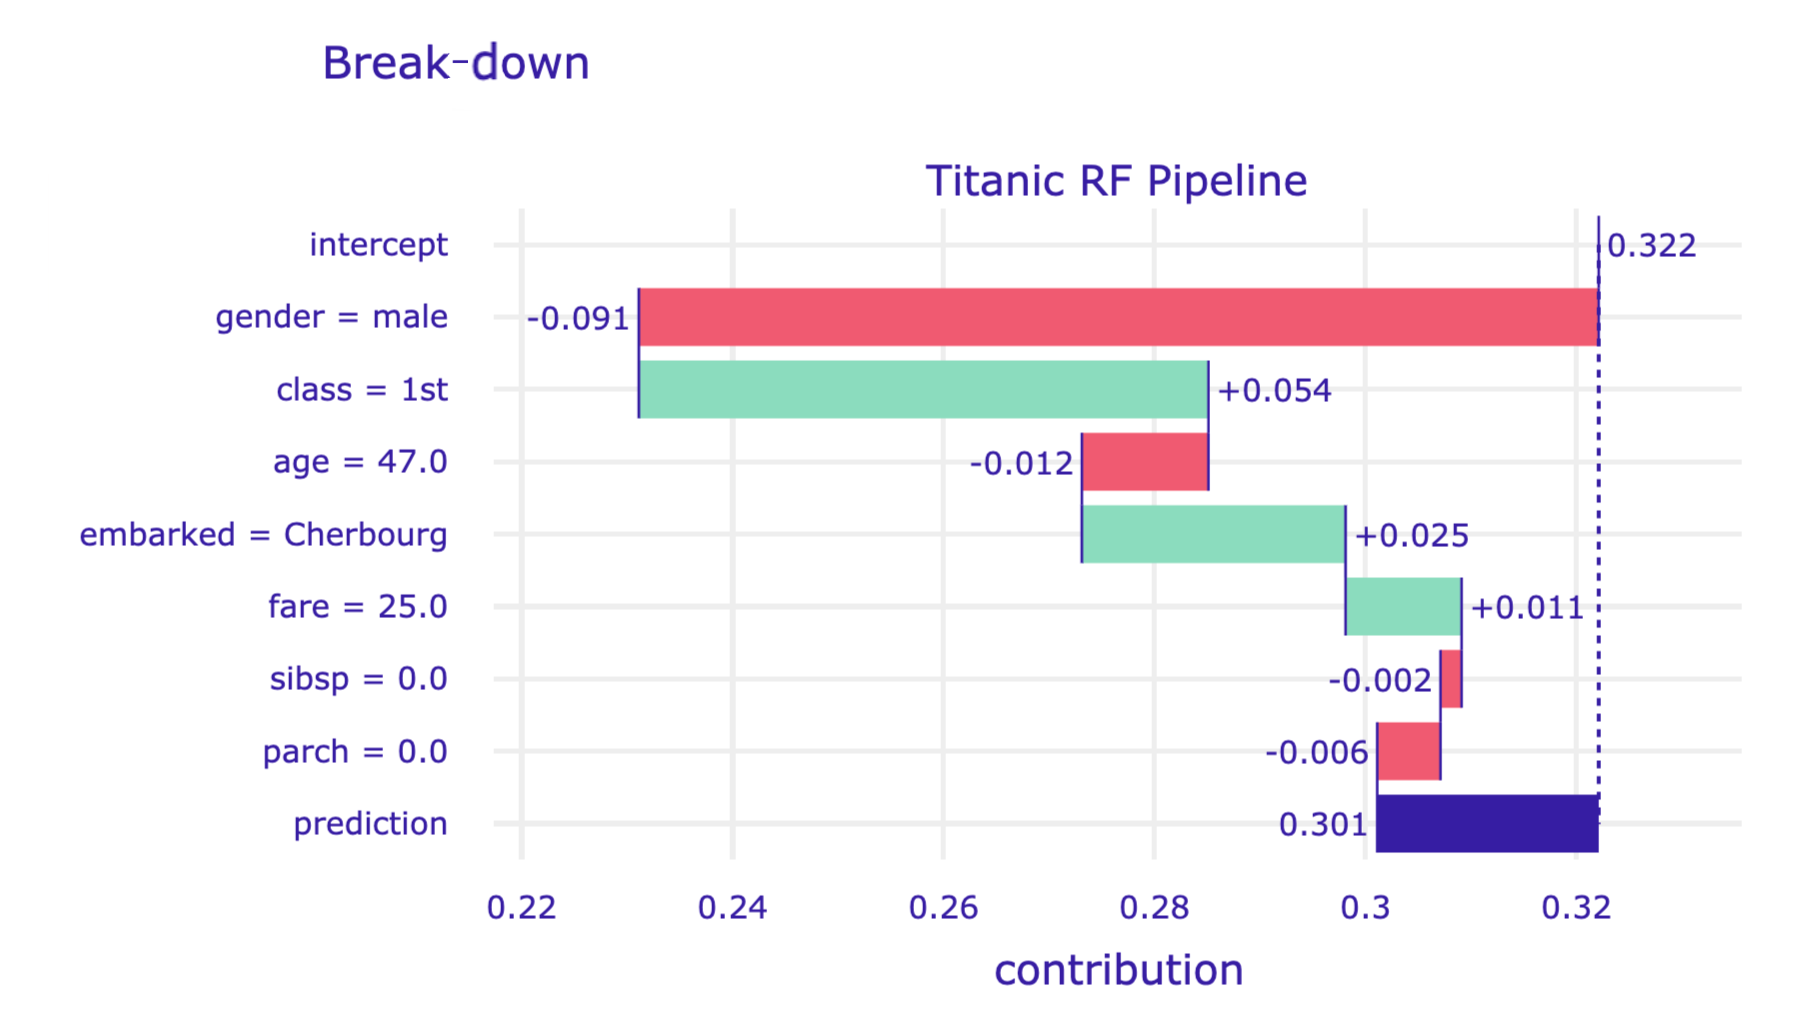 Break-down plot for a limited number of explanatory variables in a specified order for the random forest model and Henry for the Titanic data, obtained by the plot() method in Python.